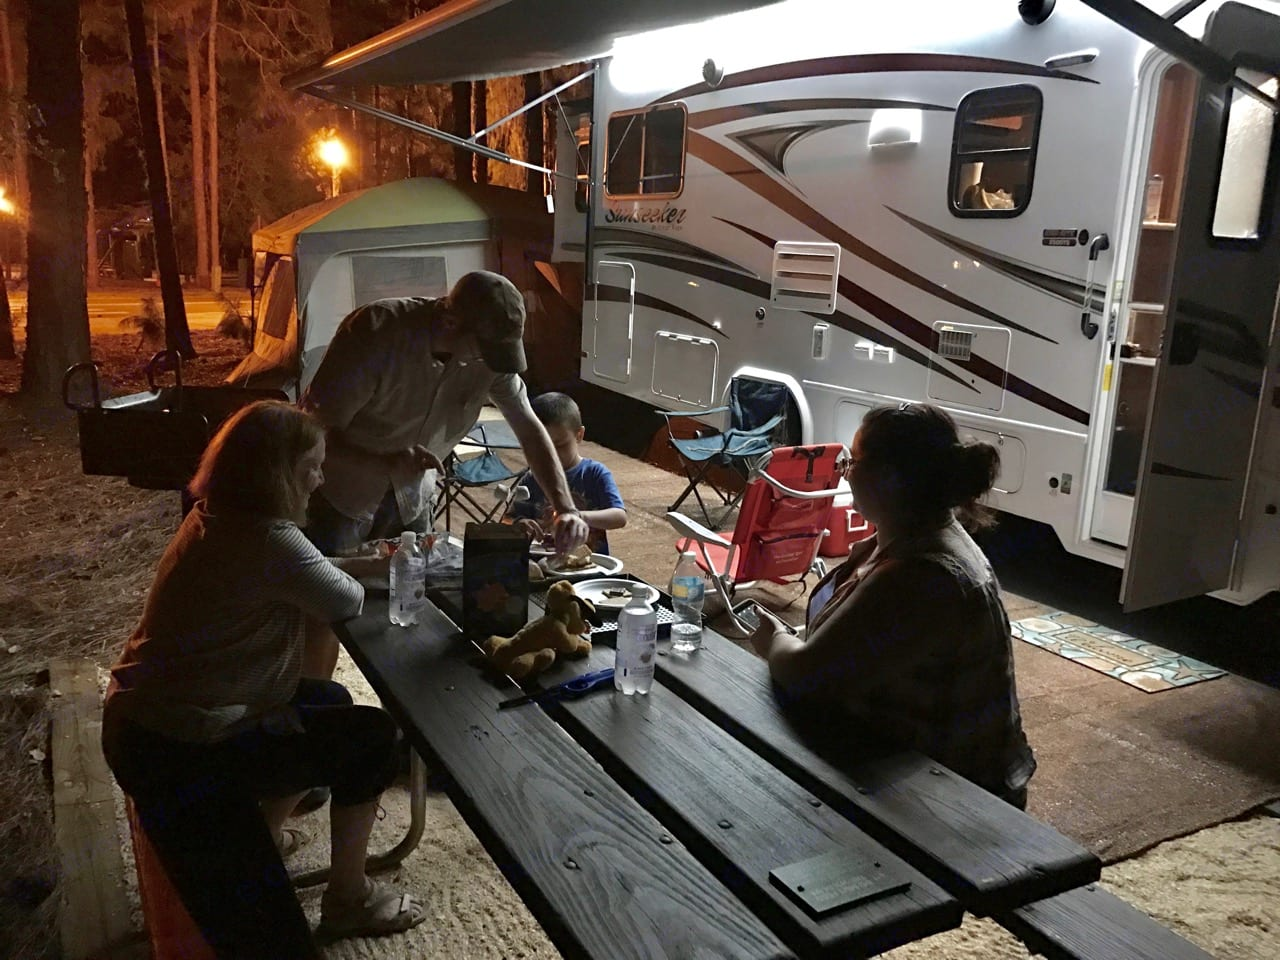 Outdoor awning lighted at Ft. Wilderness Disney FL. Forest River Sunseeker 2017